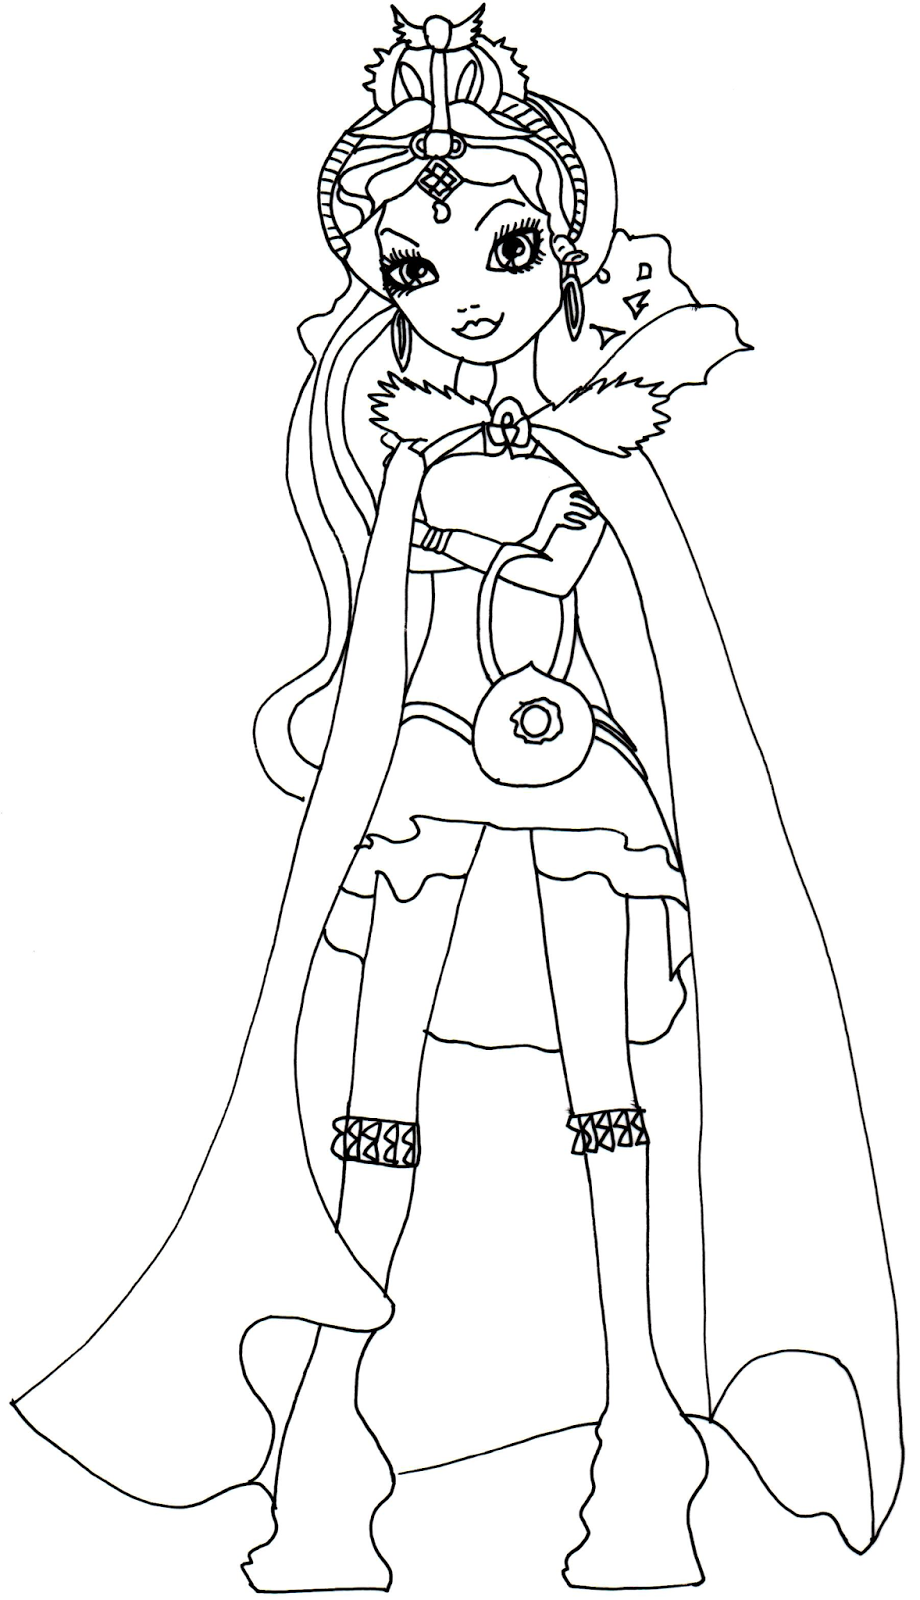 Raven Queen Legacy Day Coloring Page Png 920 1600 Cartoon Coloring Pages Mermaid Coloring Pages Cute Coloring Pages